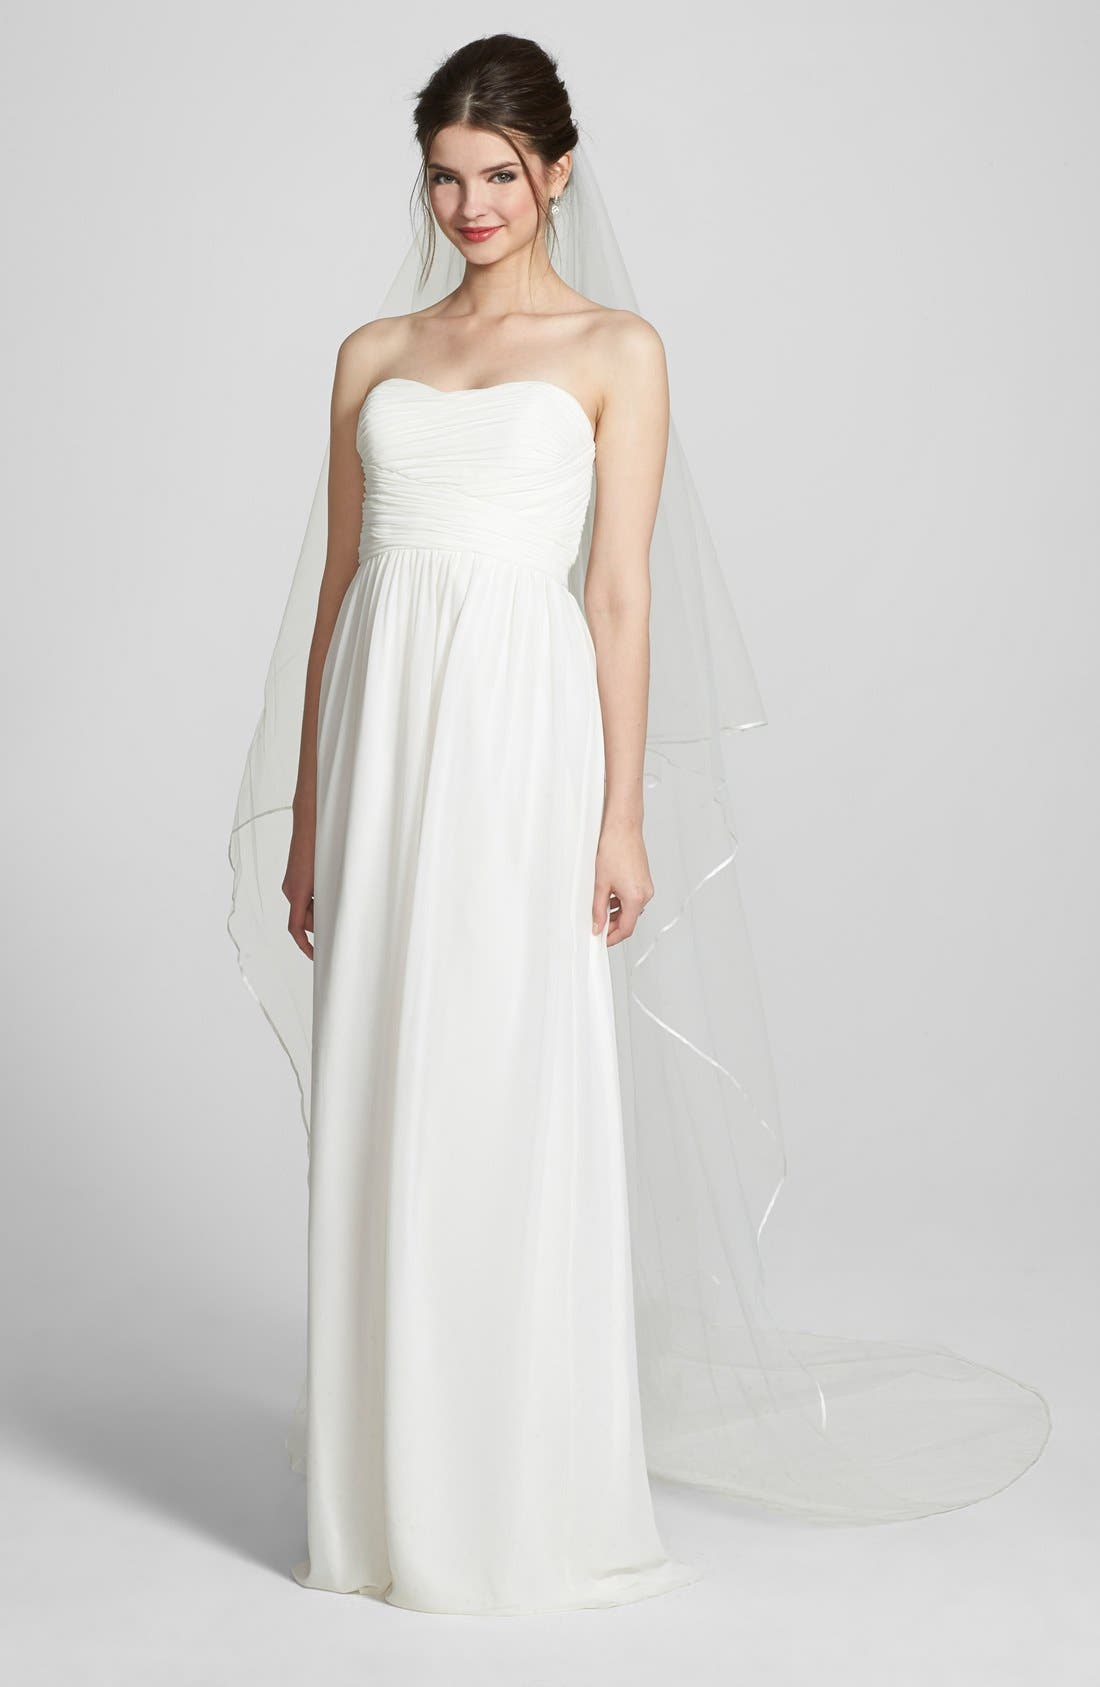 'Mable' Two-Tier Satin Trim Cathedral Veil,                             Alternate thumbnail 2, color,                             Ivory